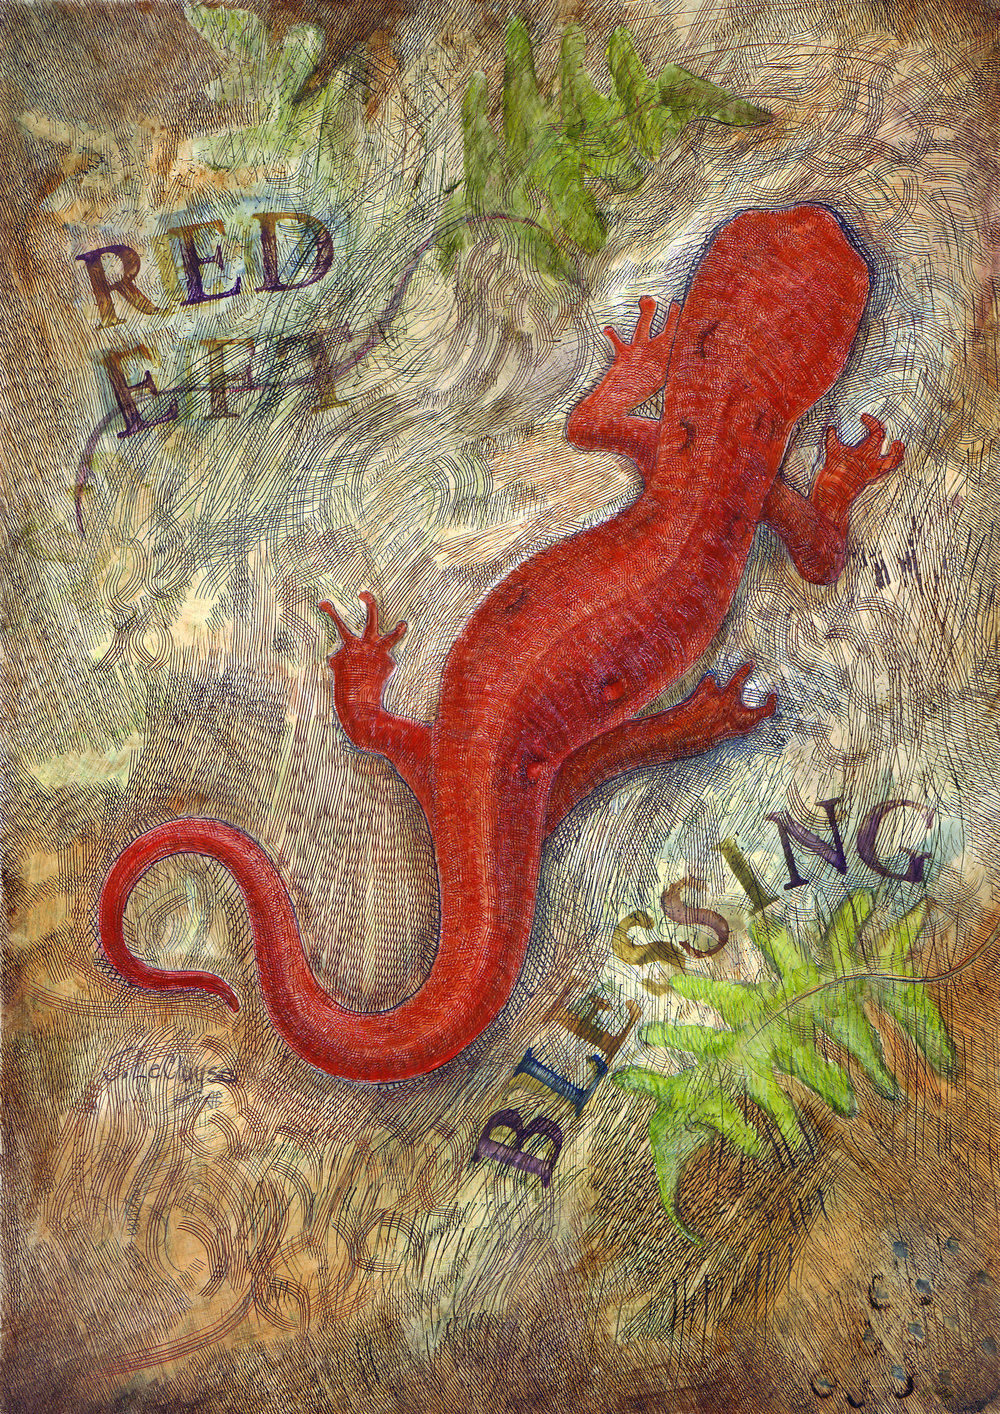 Red Eft in Resurrection Ferns